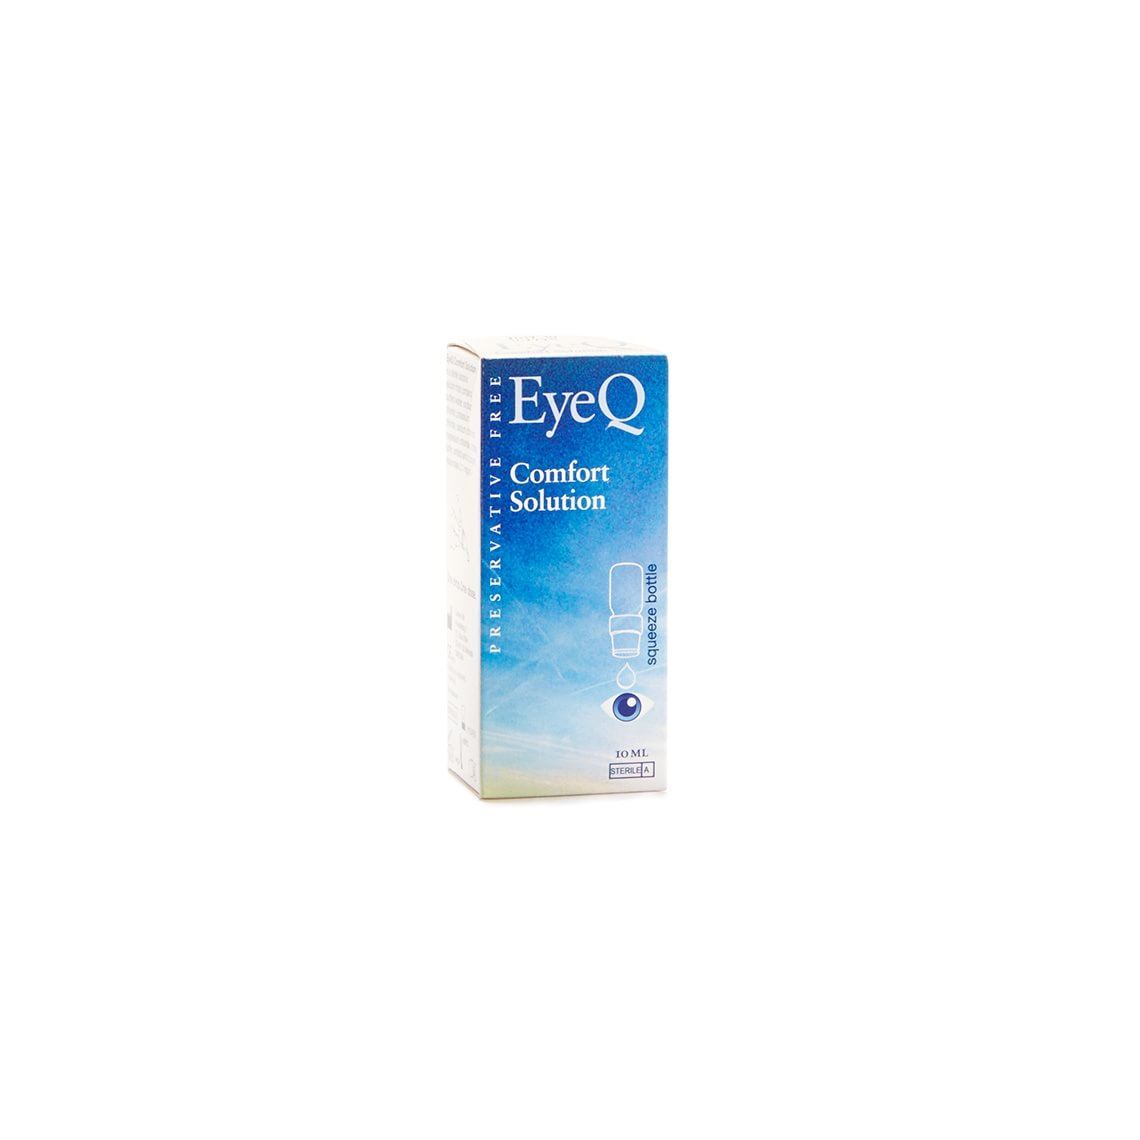 EyeQ Comfort Solution Squeeze bottle 10 ml